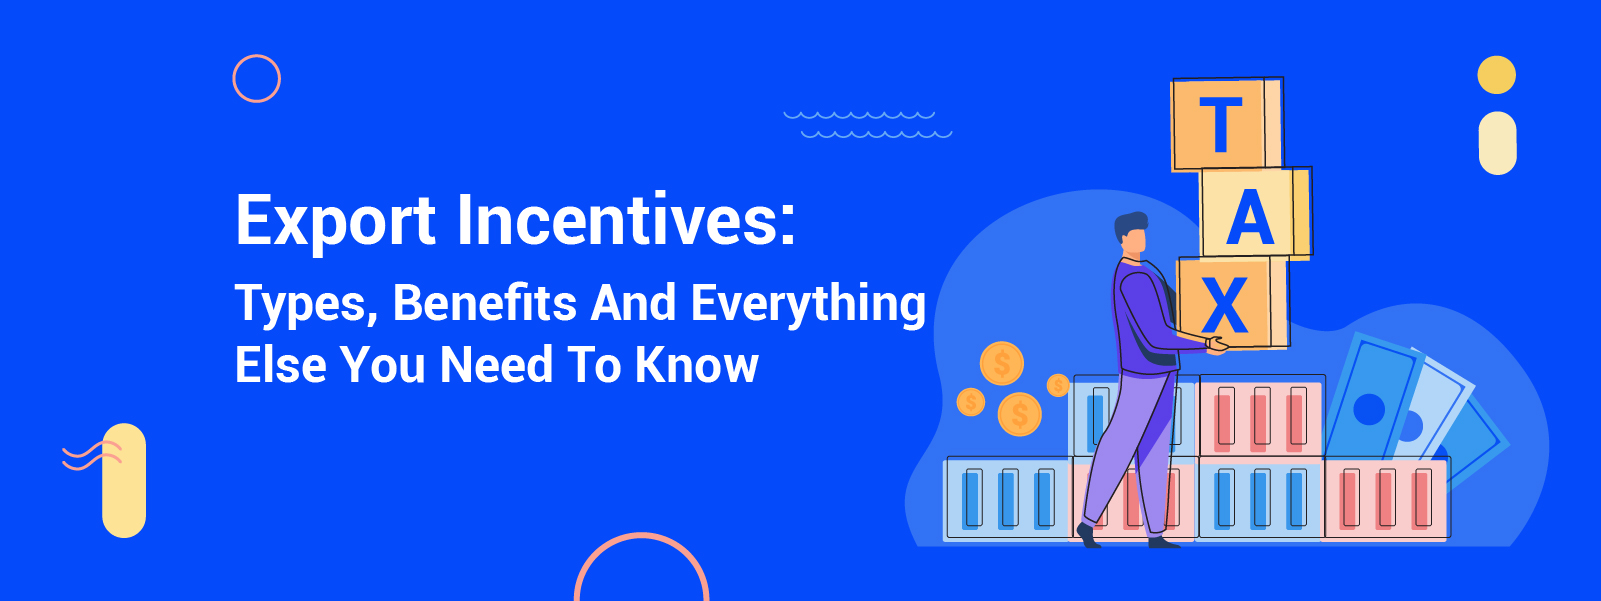 Export Incentives in India: Everything You Need To Know